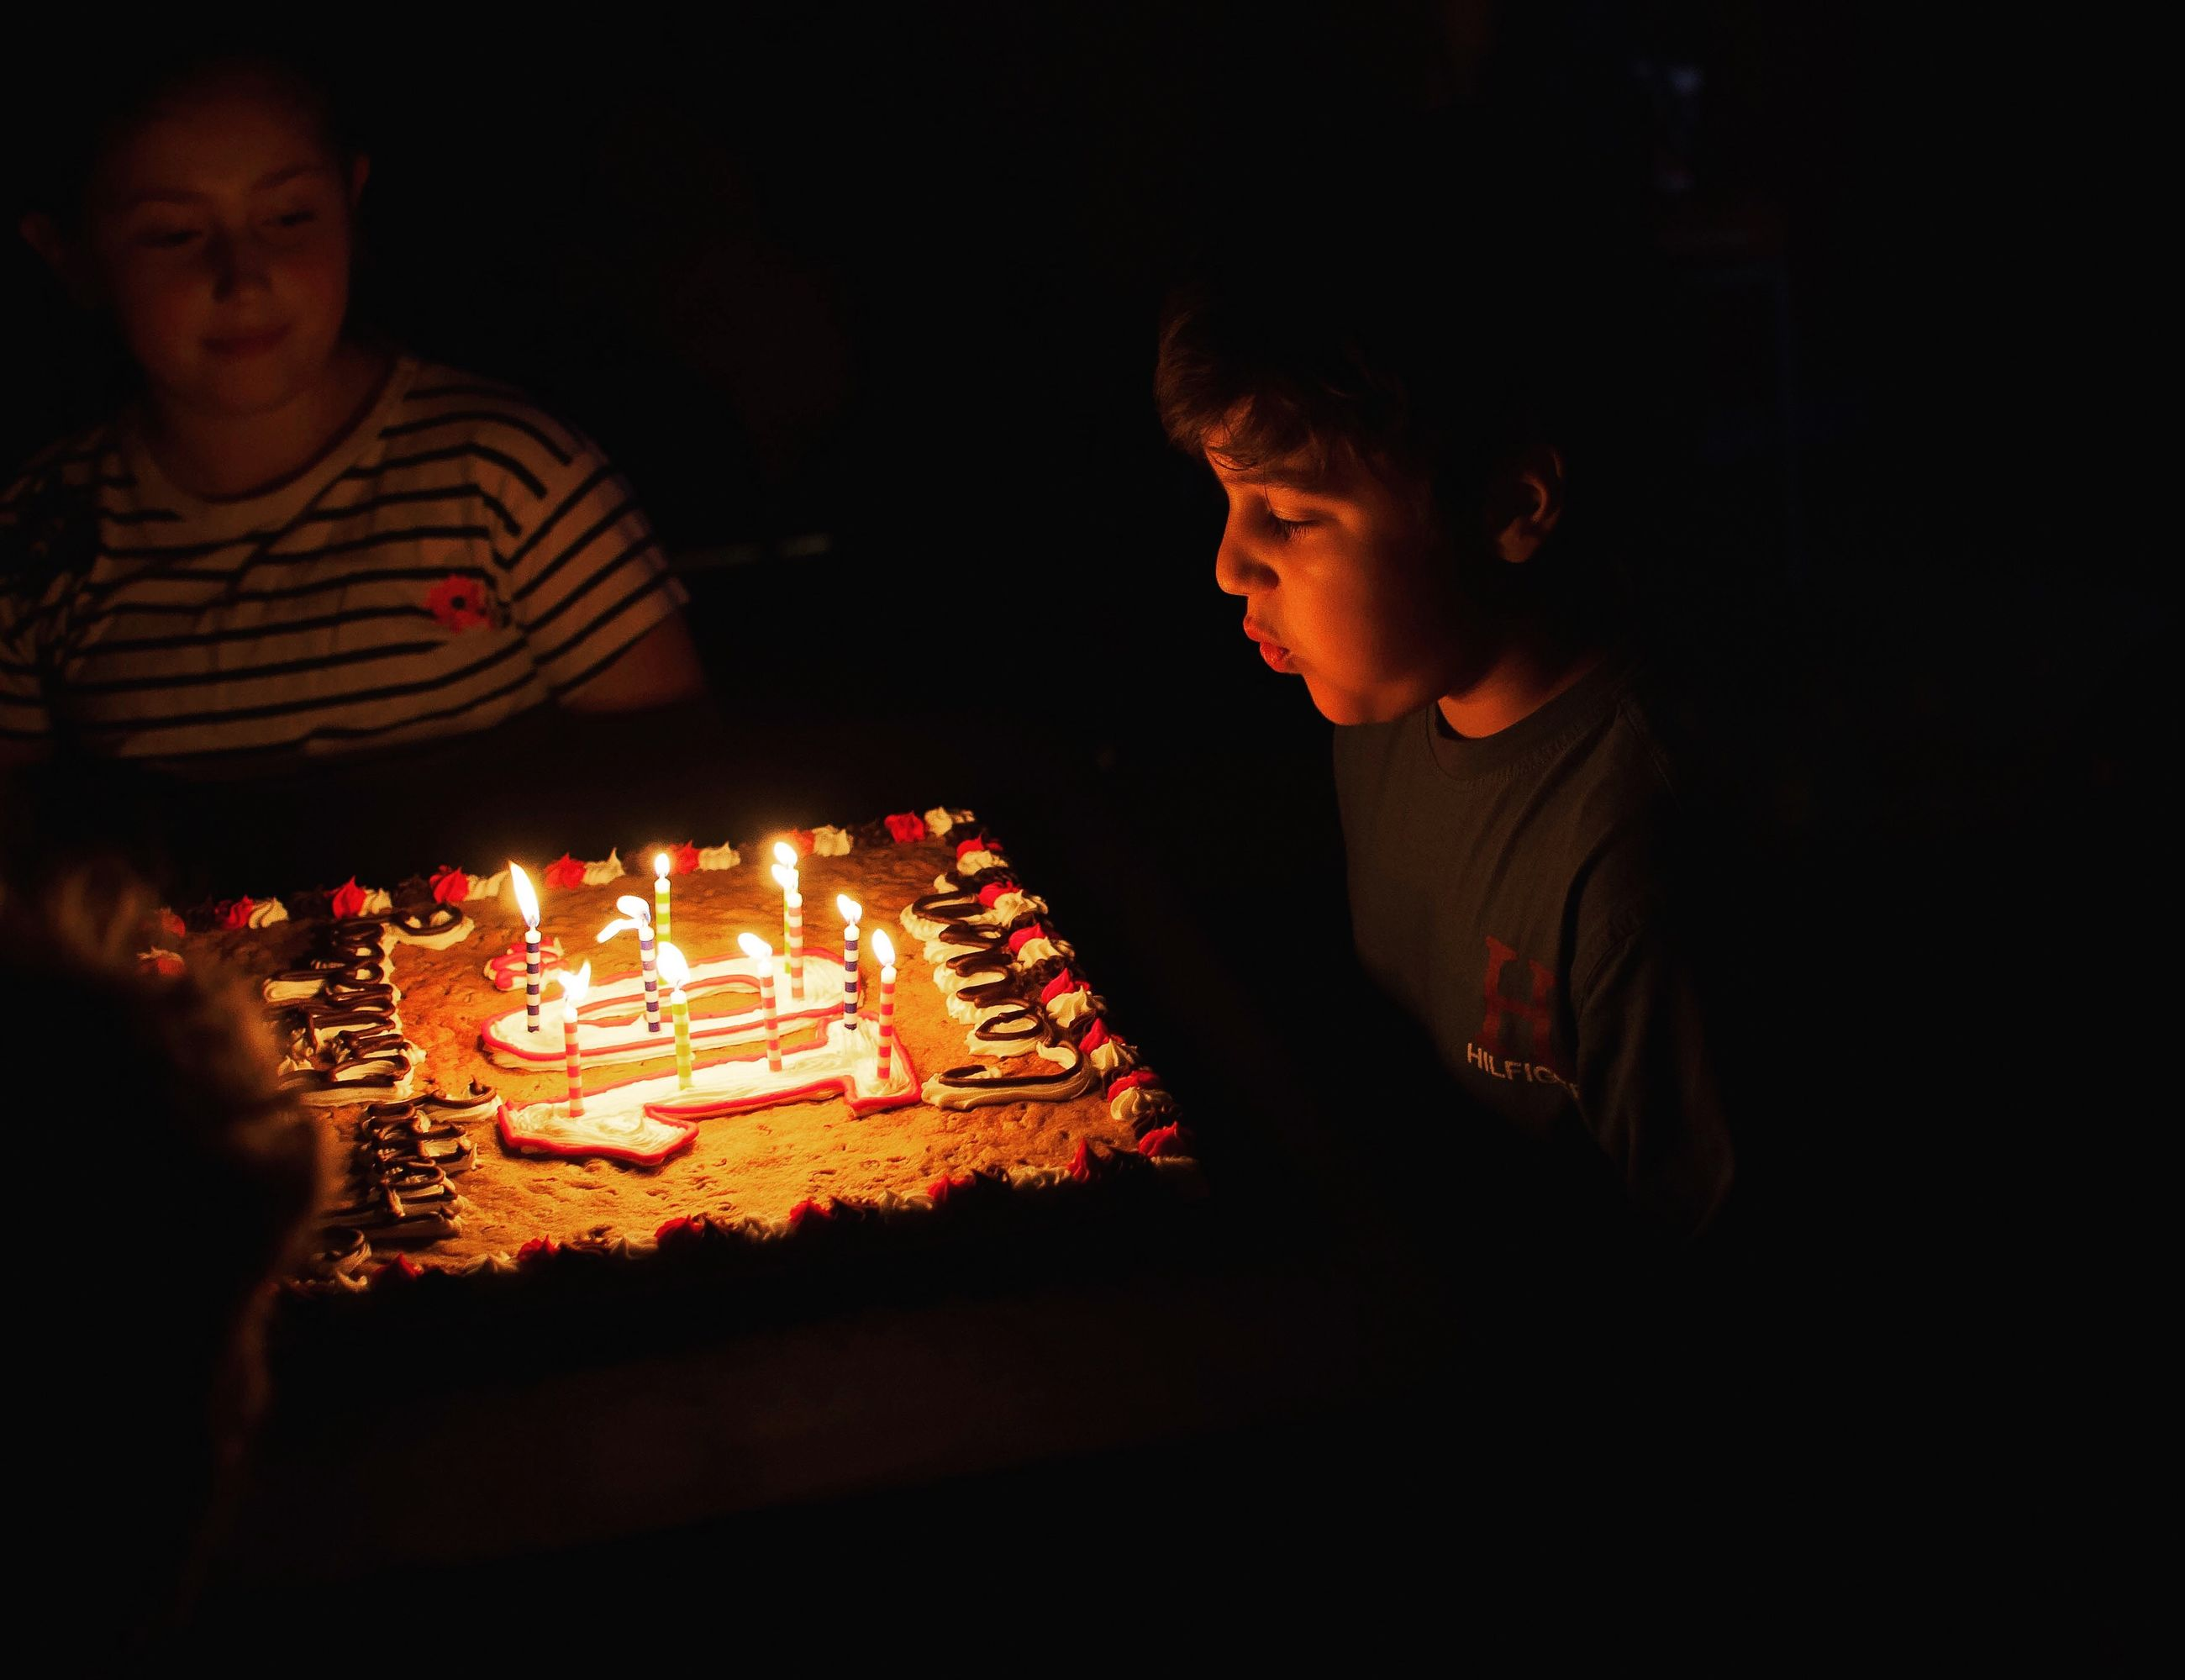 candle, flame, burning, birthday candles, boys, birthday cake, childhood, indoors, night, real people, celebration, heat - temperature, togetherness, food and drink, illuminated, two people, casual clothing, son, food, lifestyles, birthday, sweet food, freshness, people